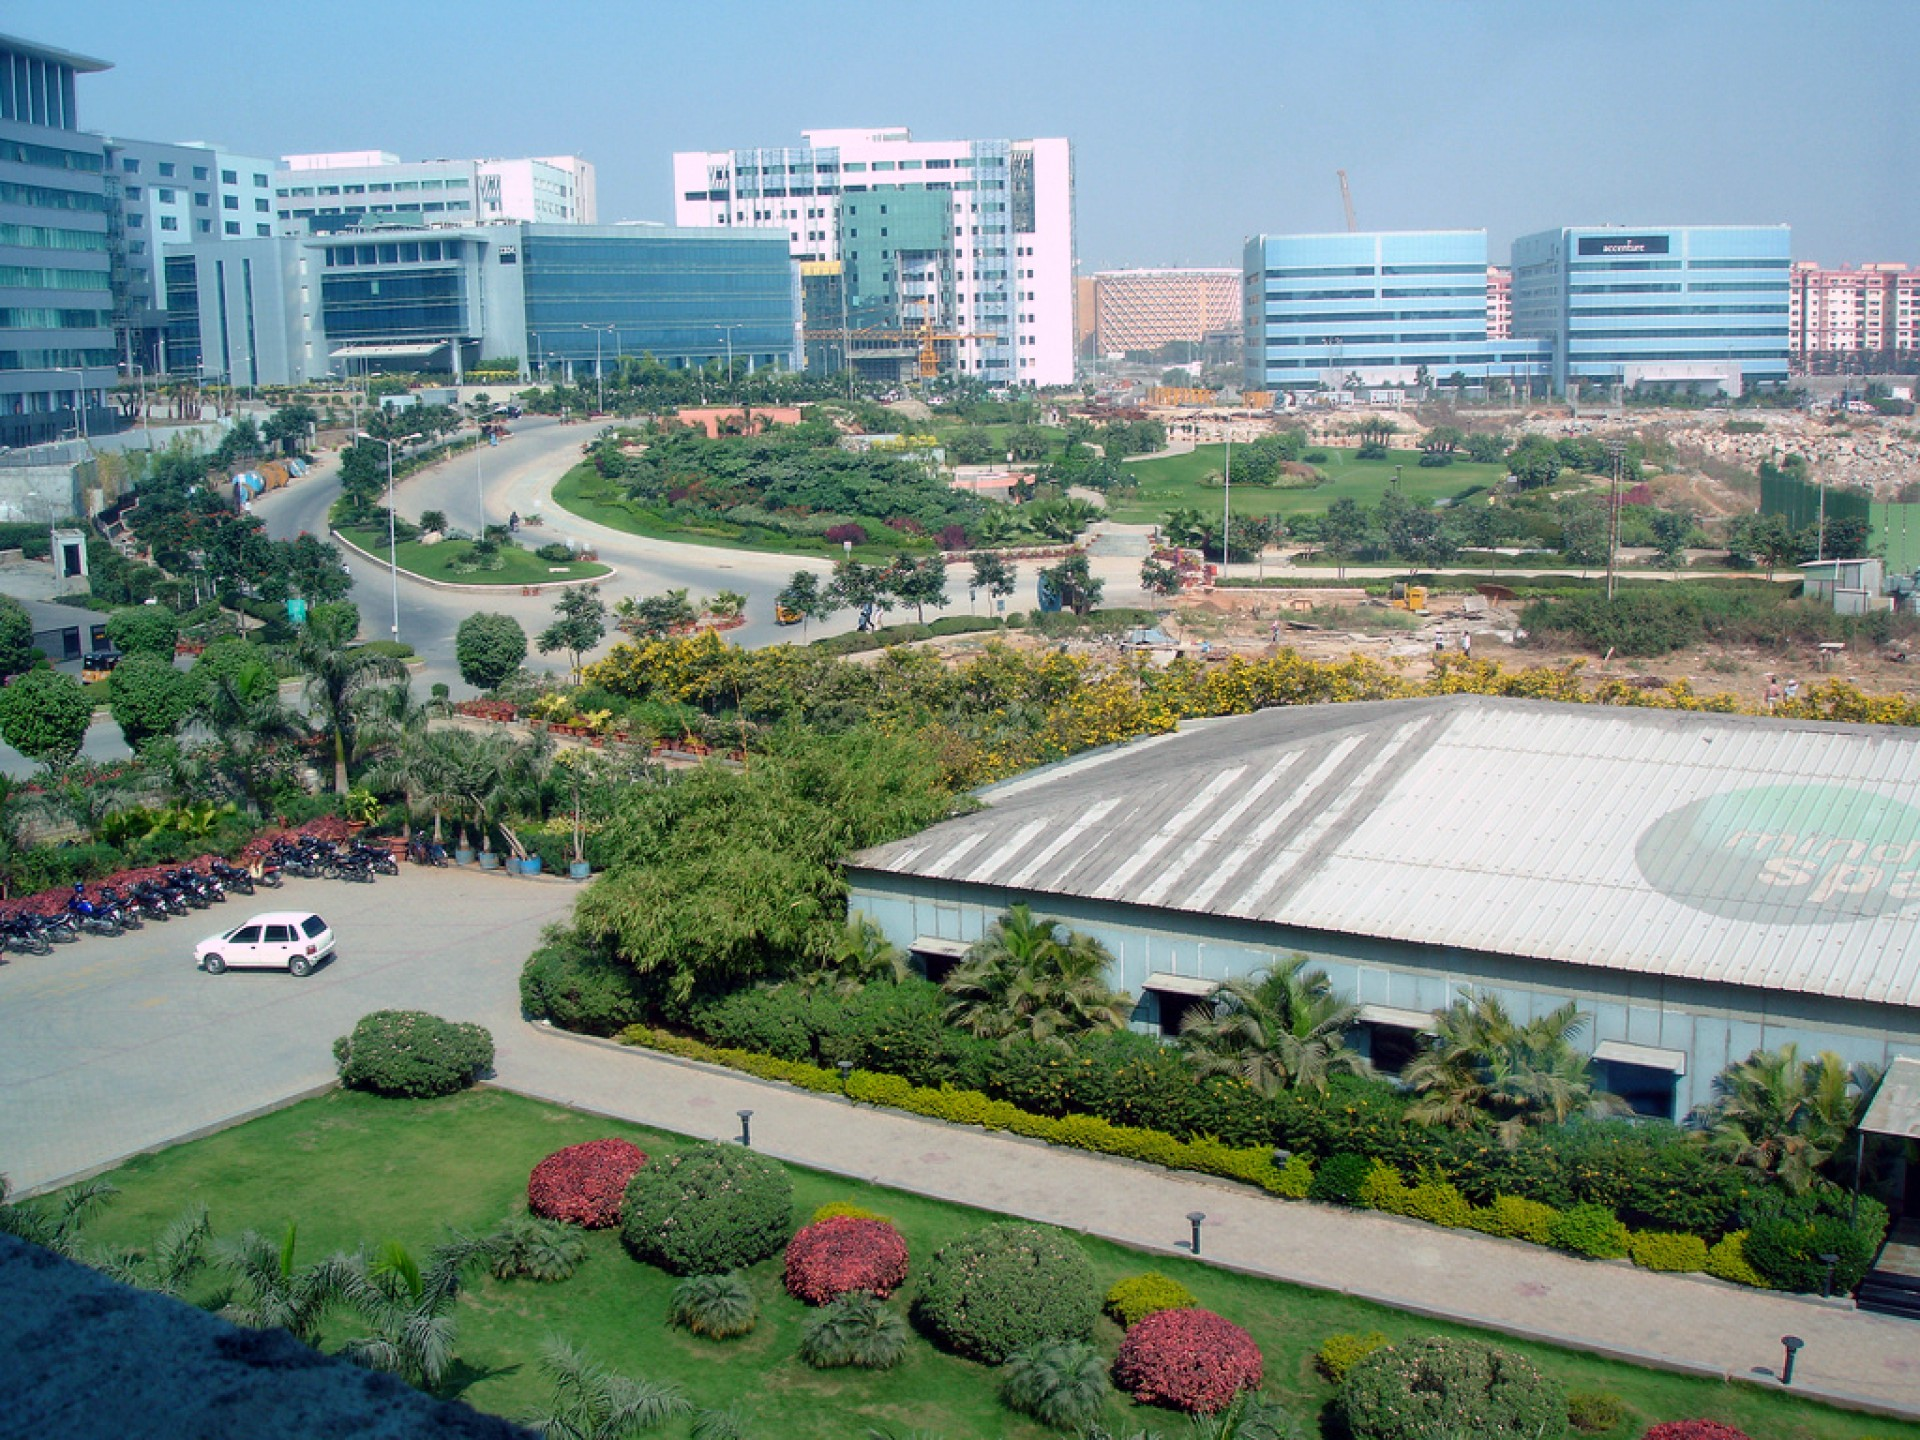 006 Mindspace Campus In Hyderabad2c India About Hyderabad City Essay Impressive Hindi English 1920